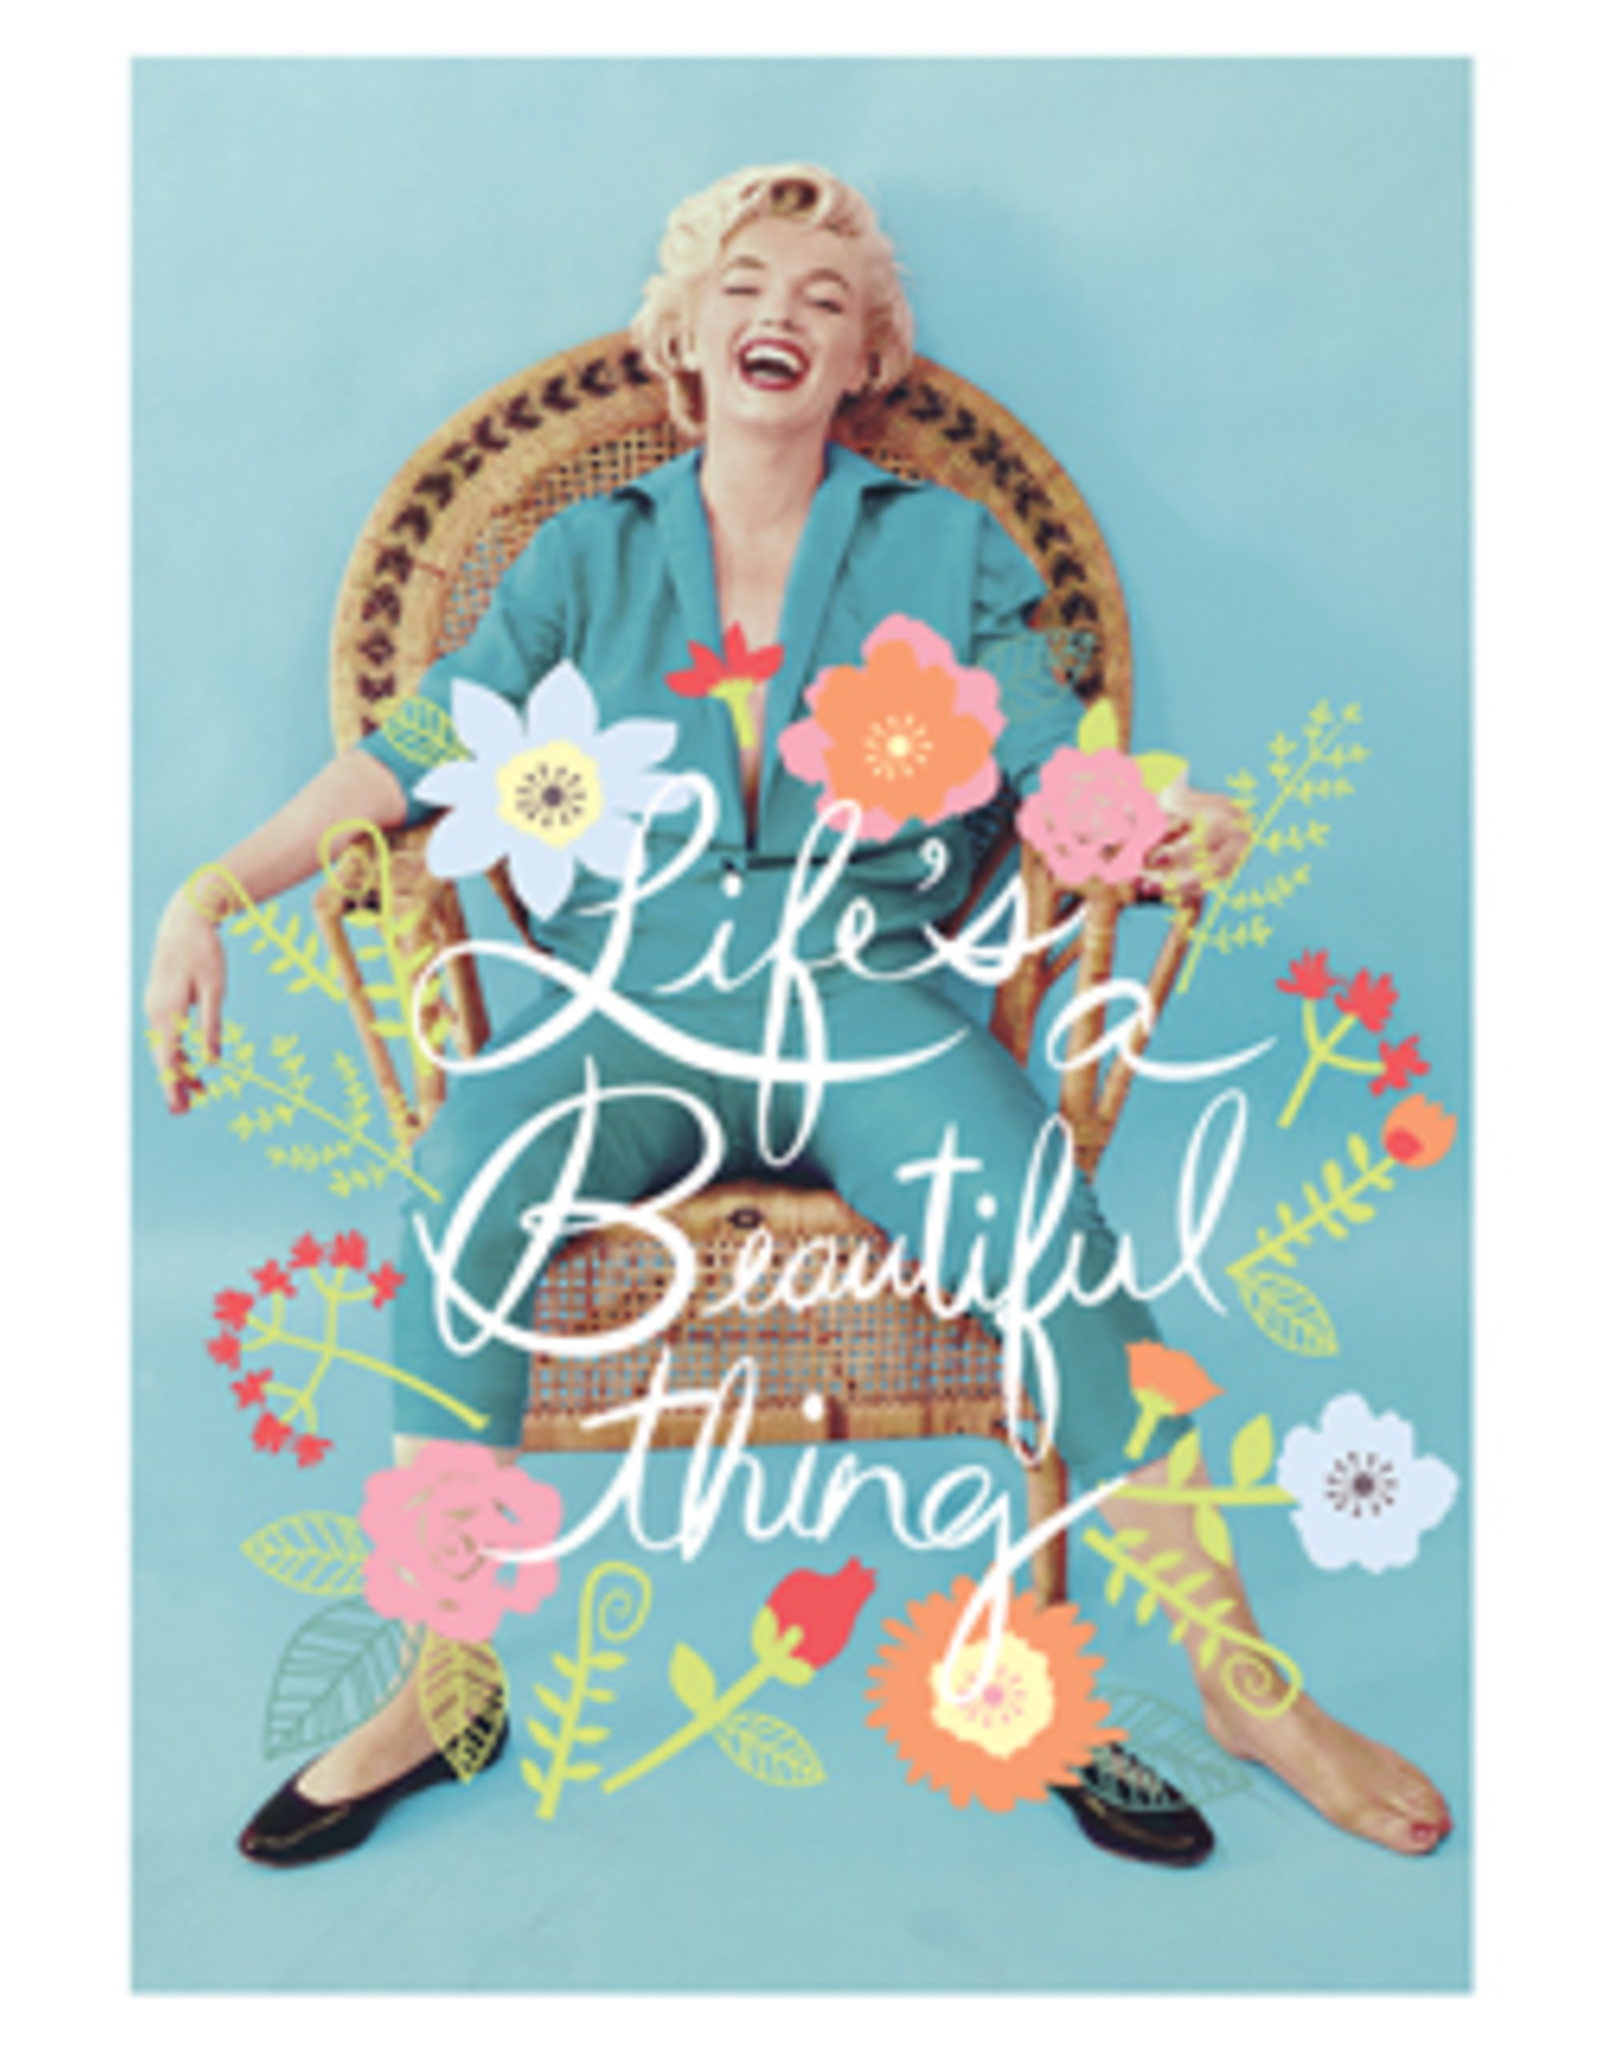 Marilyn Monroe kaart - Life's a beautiful thing